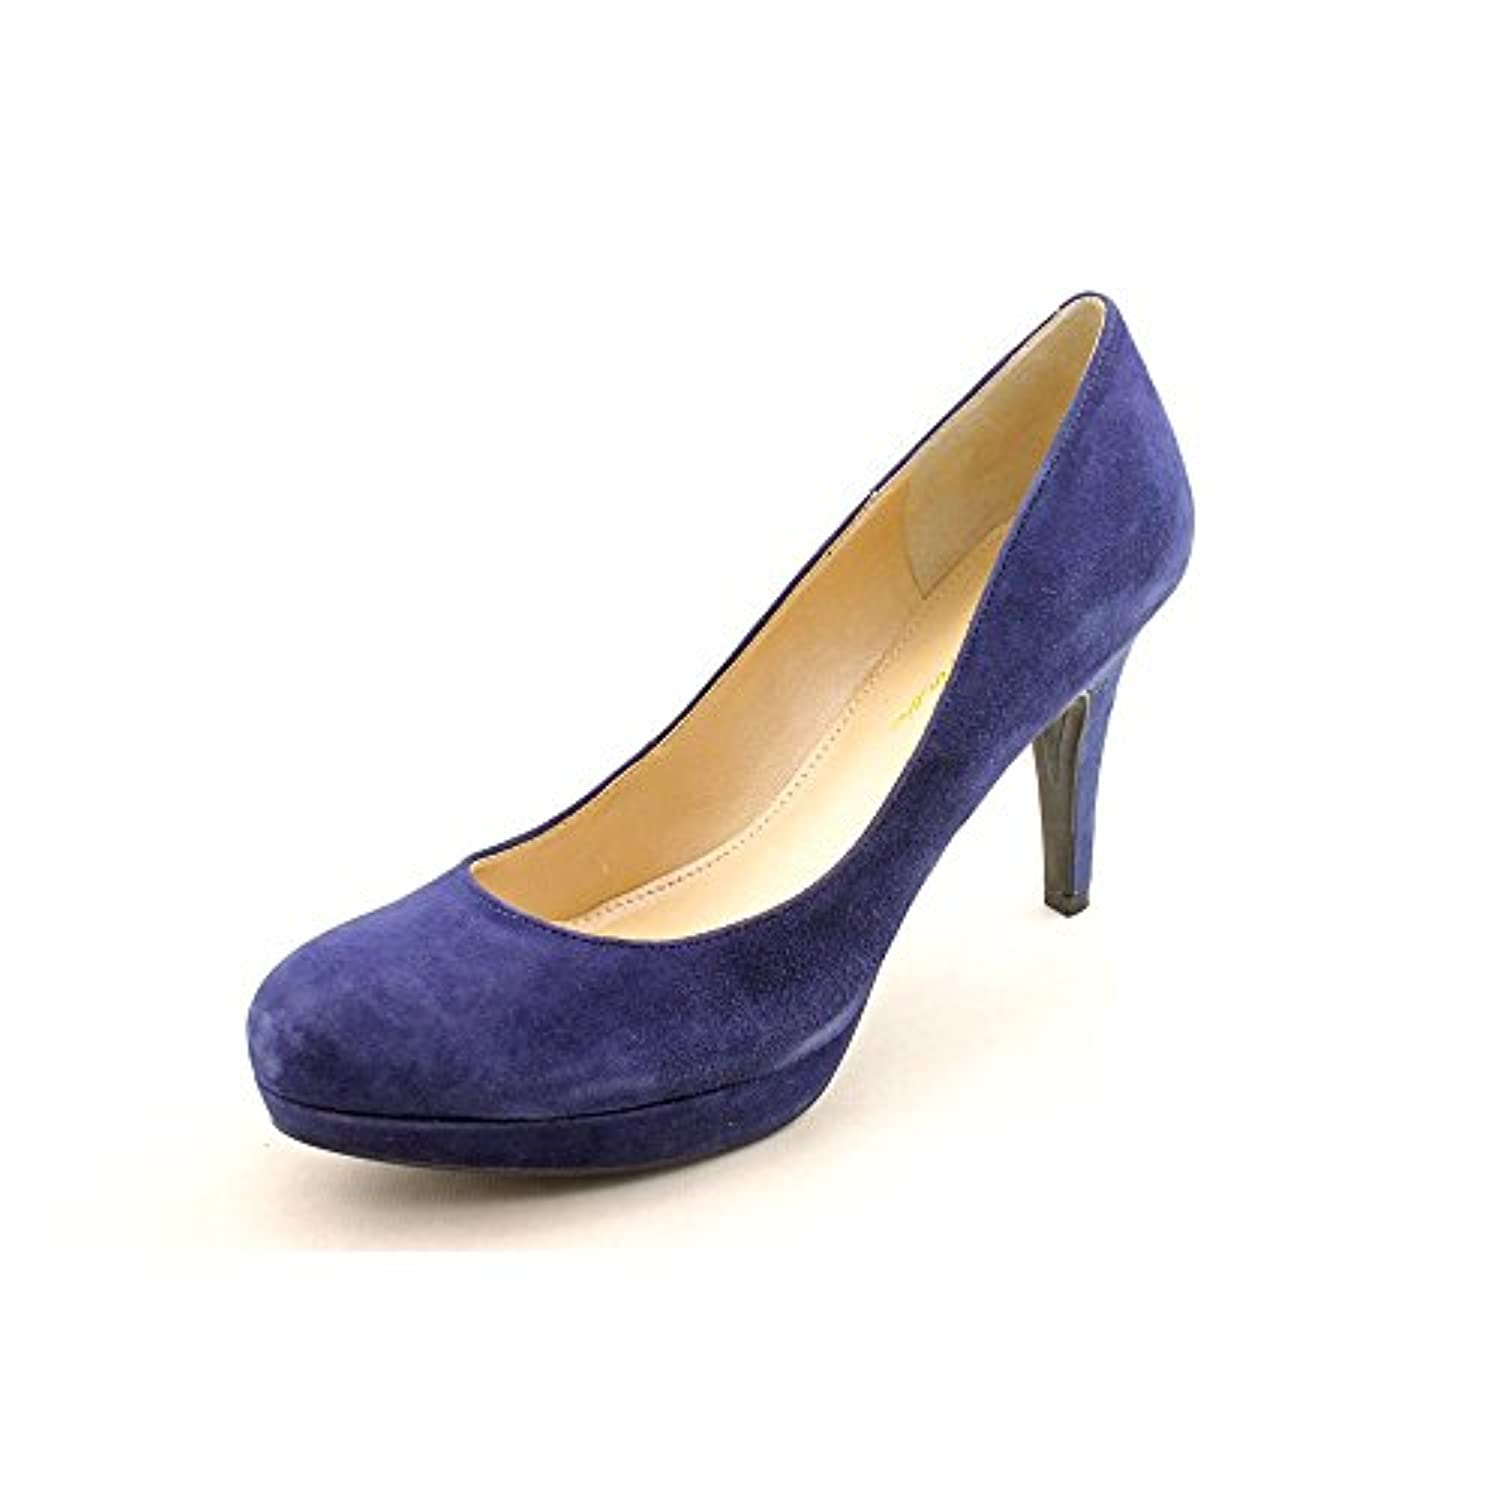 % suede PUMPS GEDEBE, SUEDE %, color LIGHT BLUE, Heel mm, Leather sole, FW17, product code 71SDCELES Ships from and sold by a Bluefly Marketplace Partner.